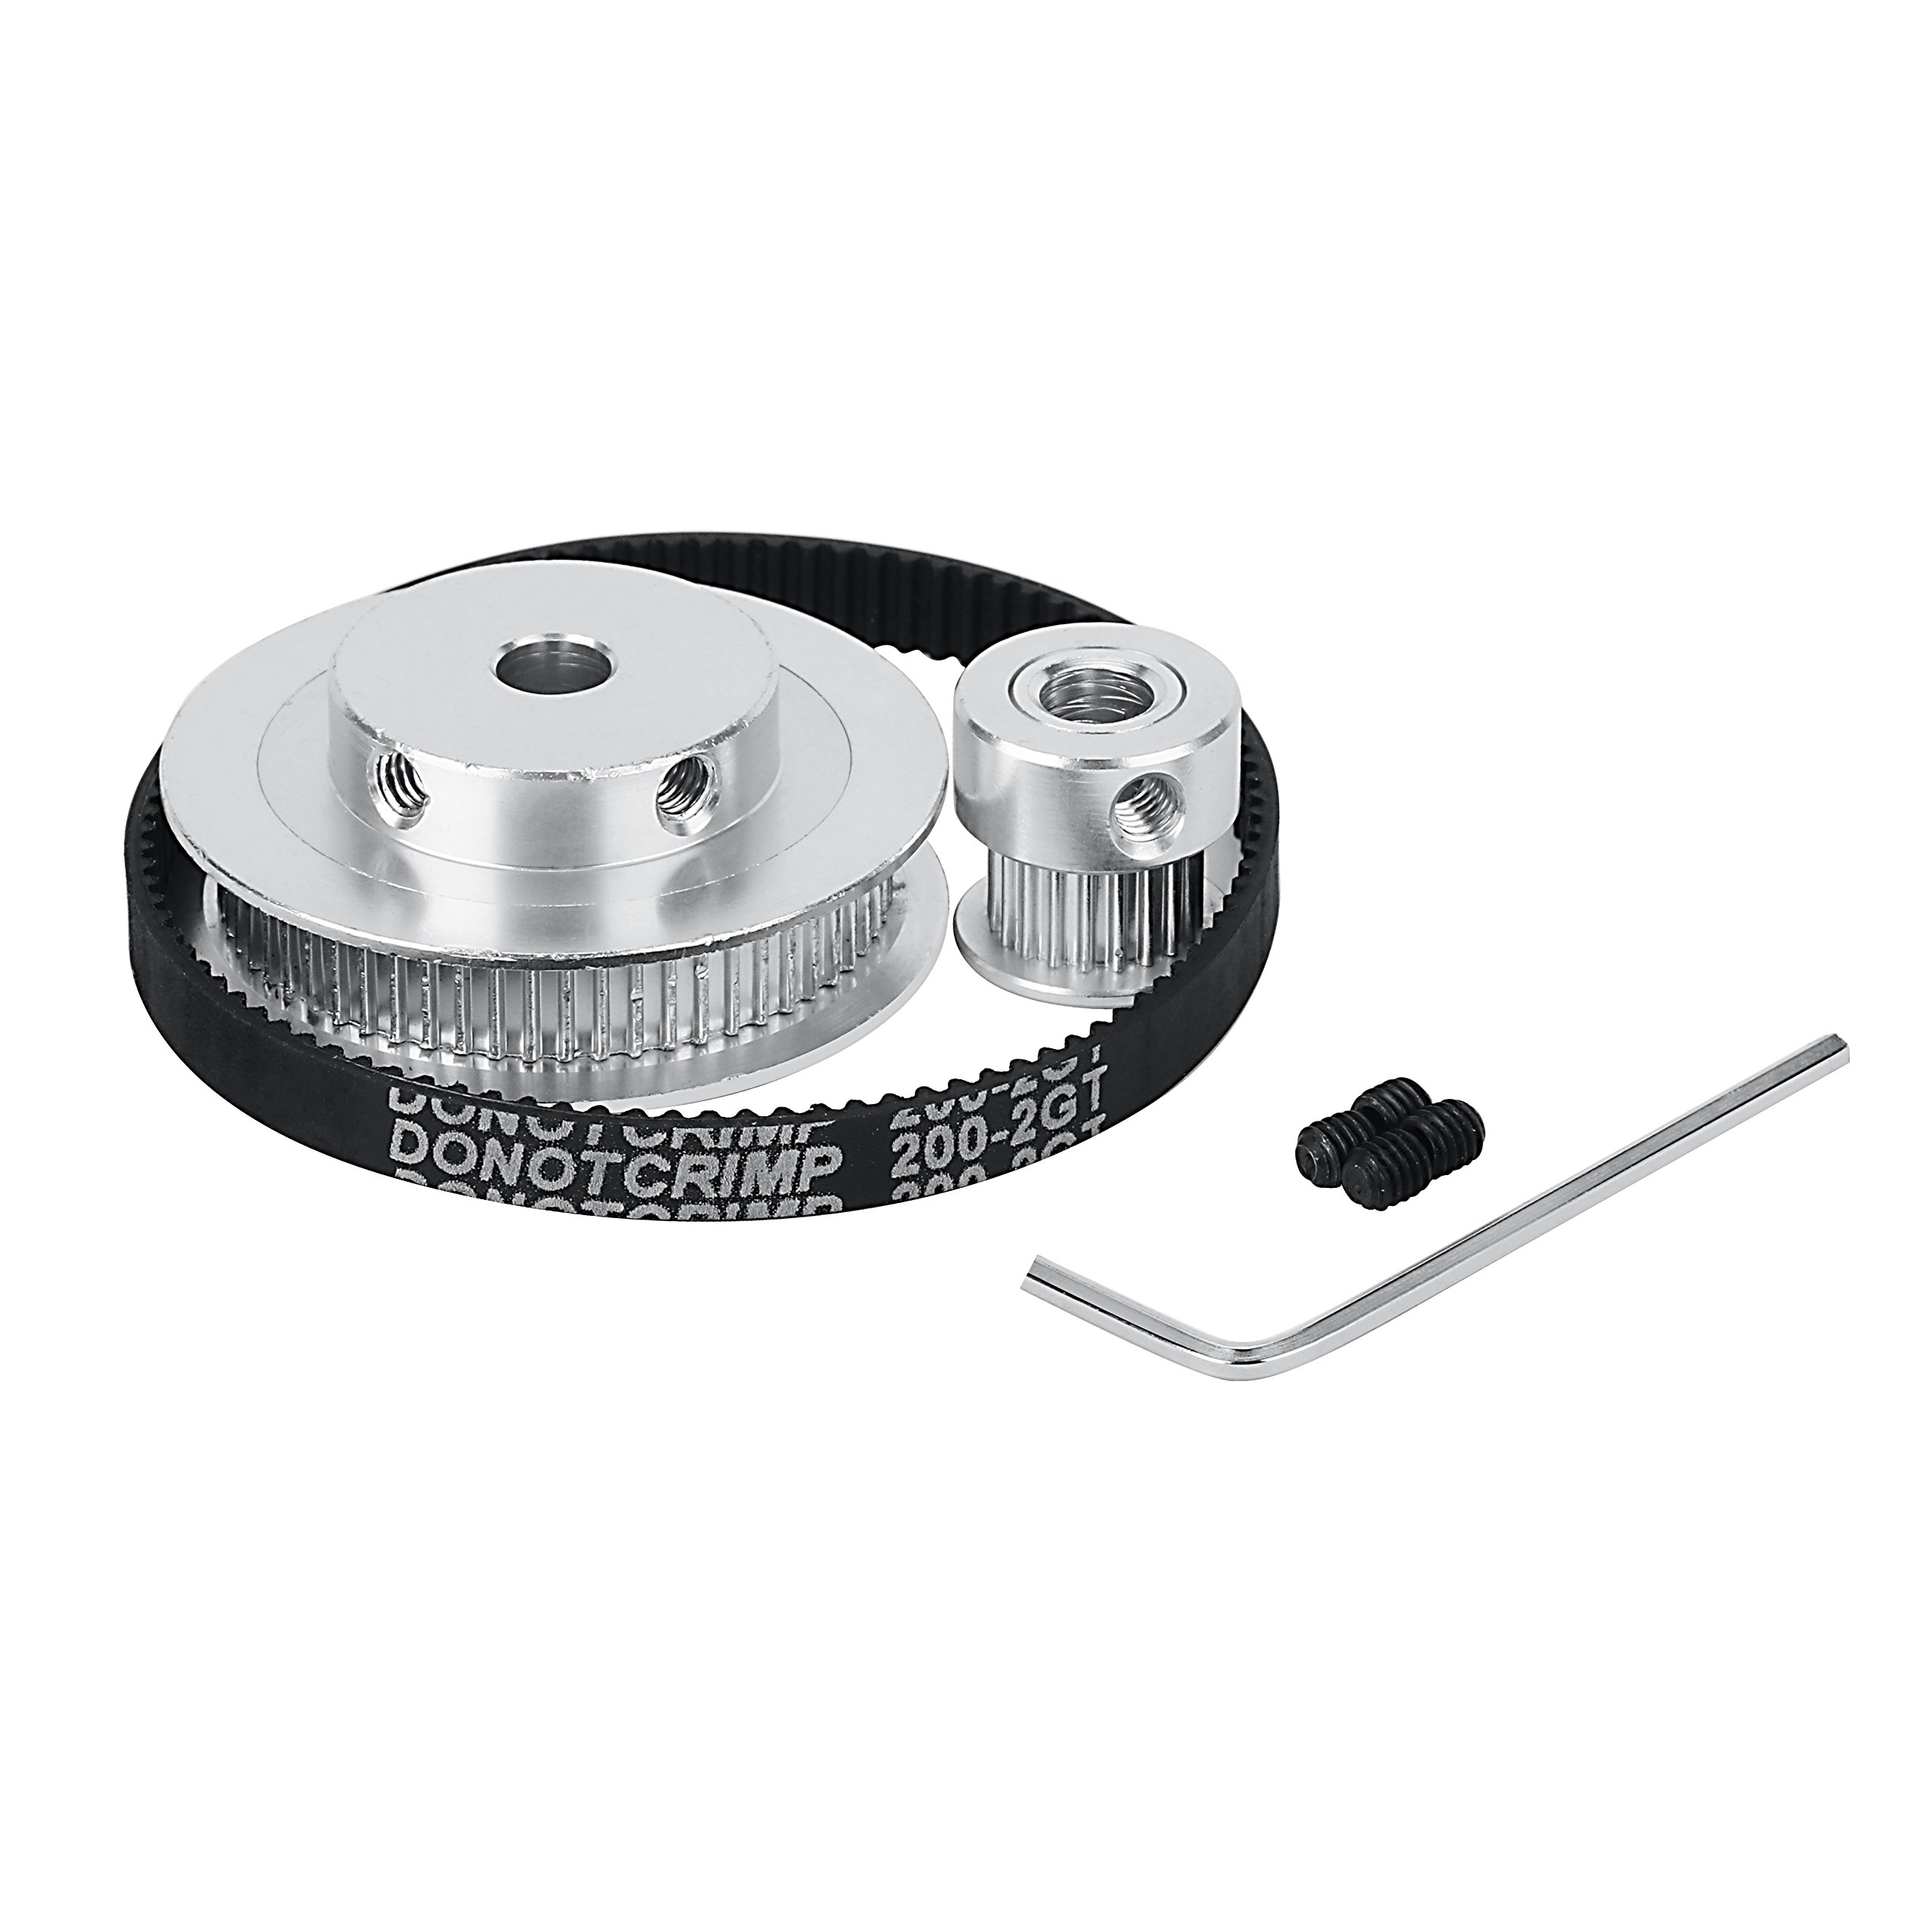 2GT Timing Belt Pulley Kits, GT2 Timing Belt Closed-Loop 200mm 6mm Wide+ 20 Teeth and 60 Teeth Aluminum Timing Pulley Wheel + Allen Wrench for 3D Printer Accessories